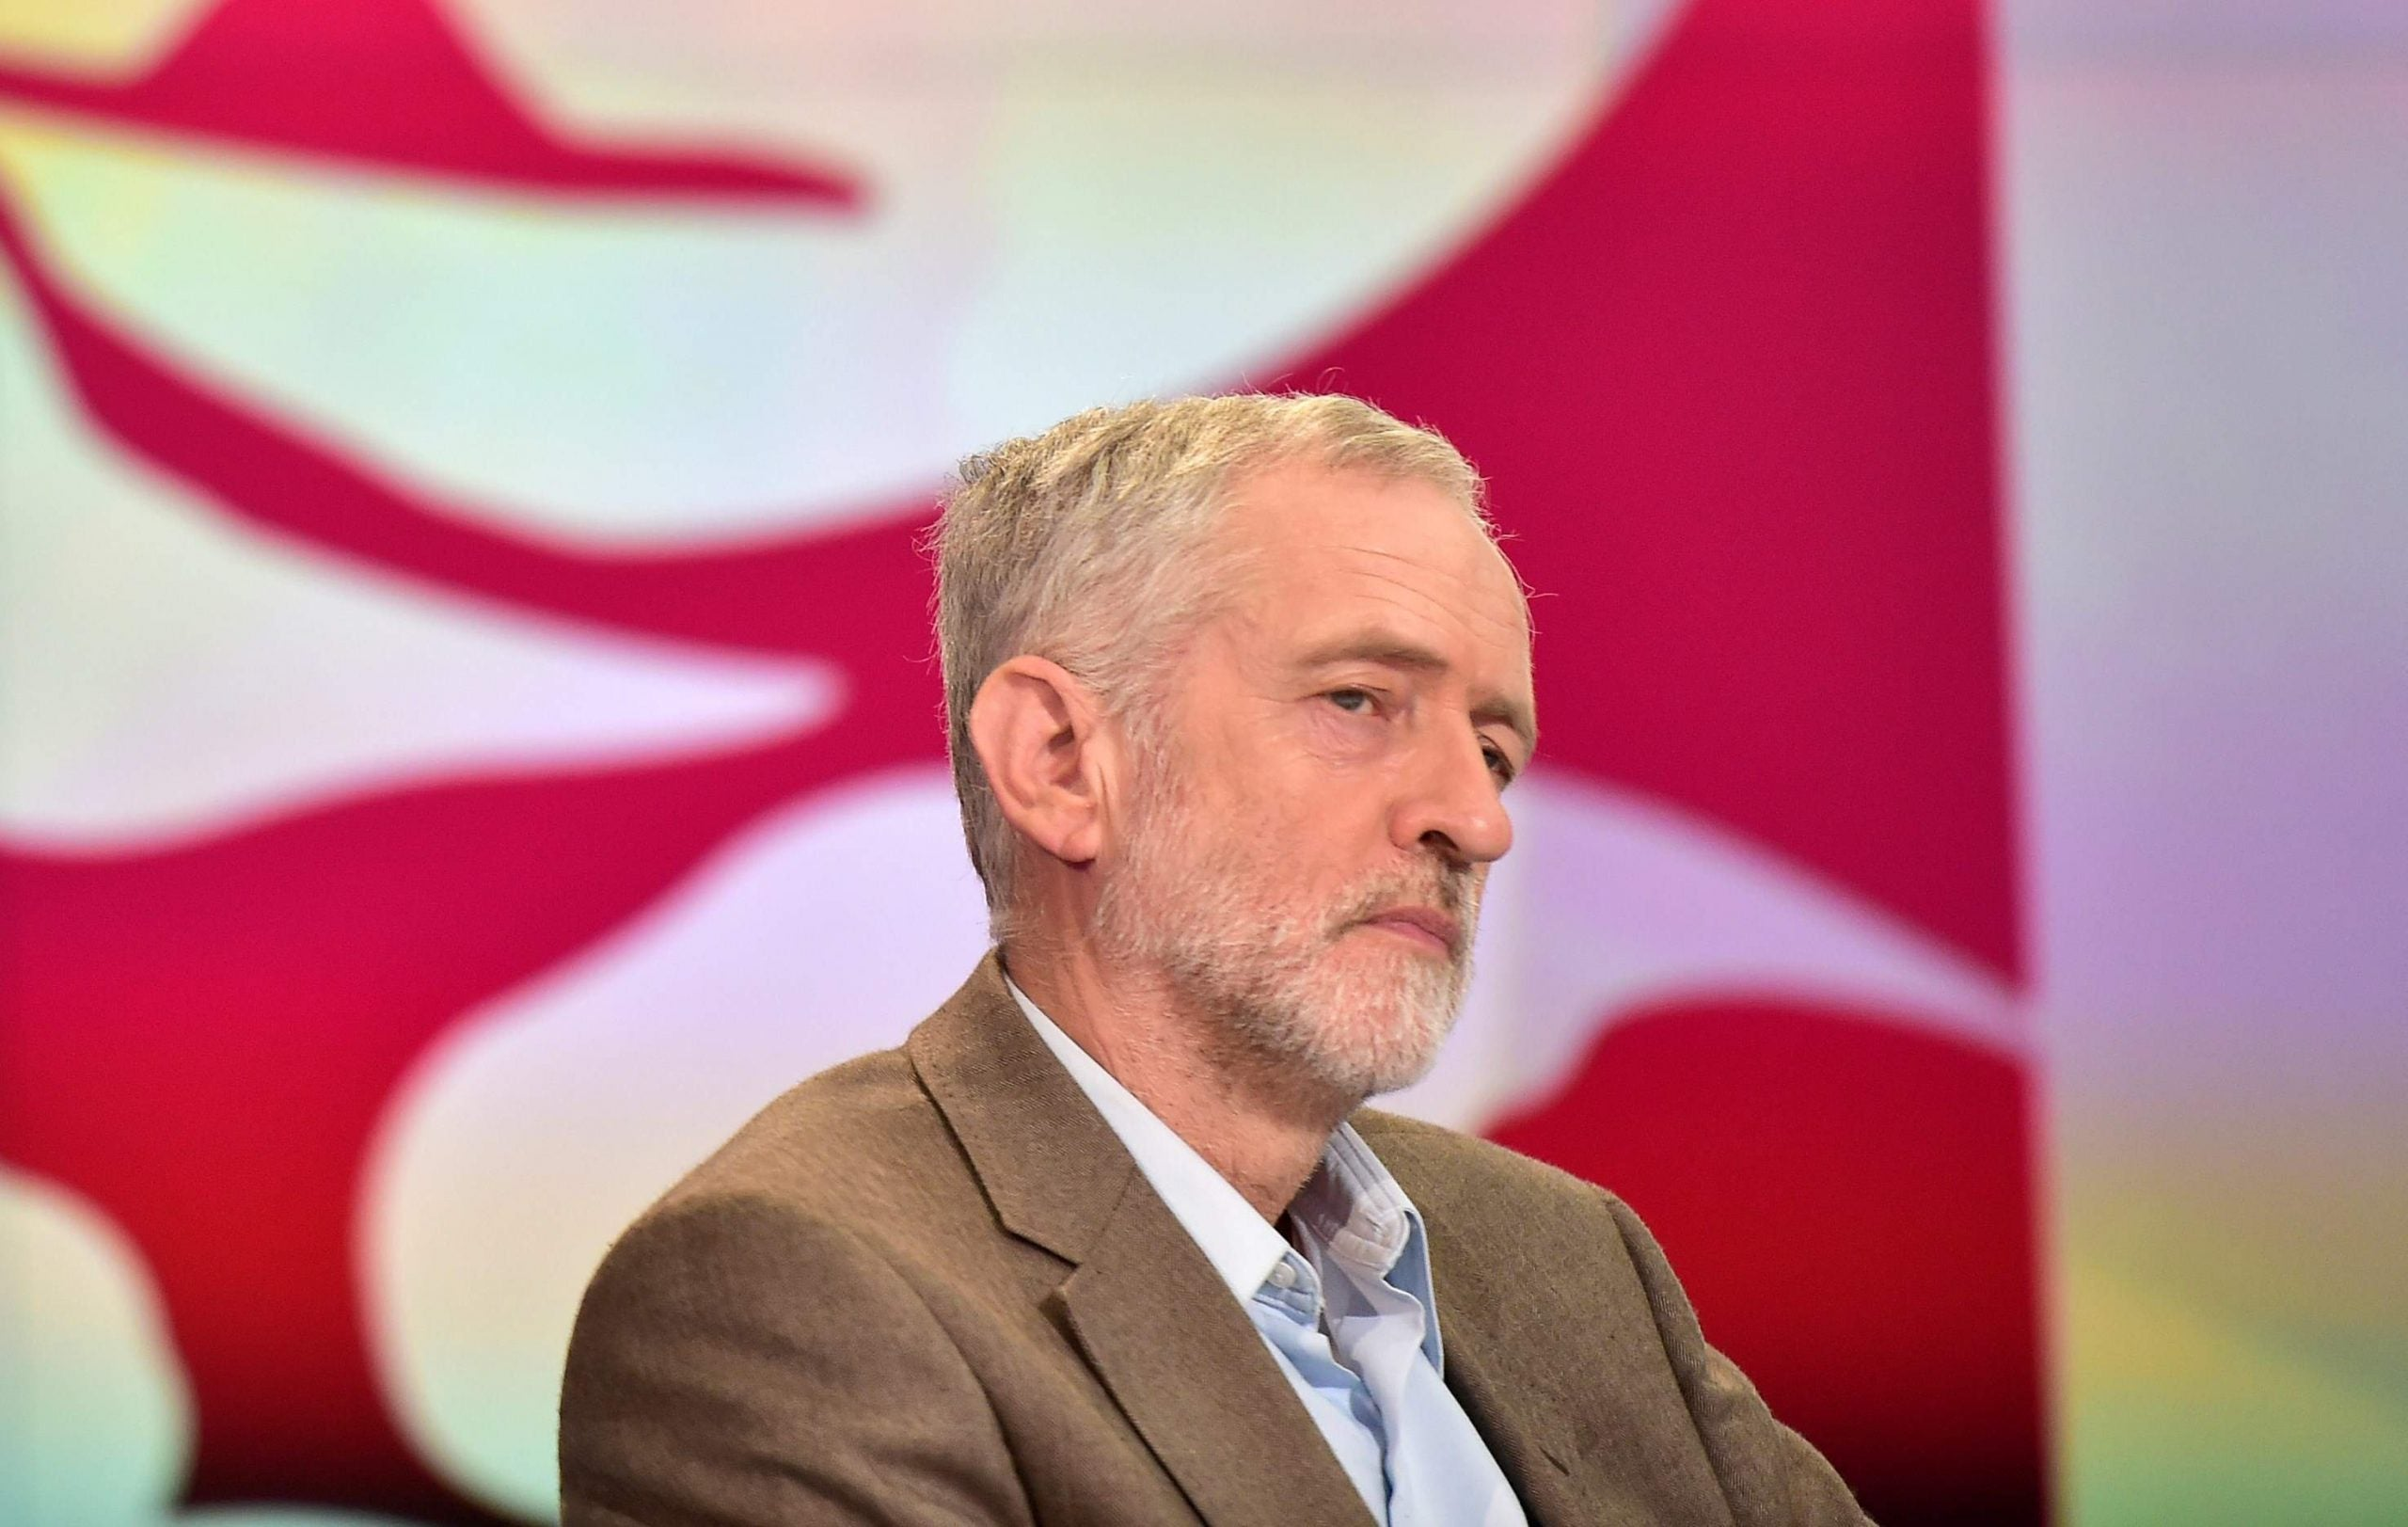 I'm no fan of Jeremy Corbyn, but good on him for keeping quiet during the national anthem